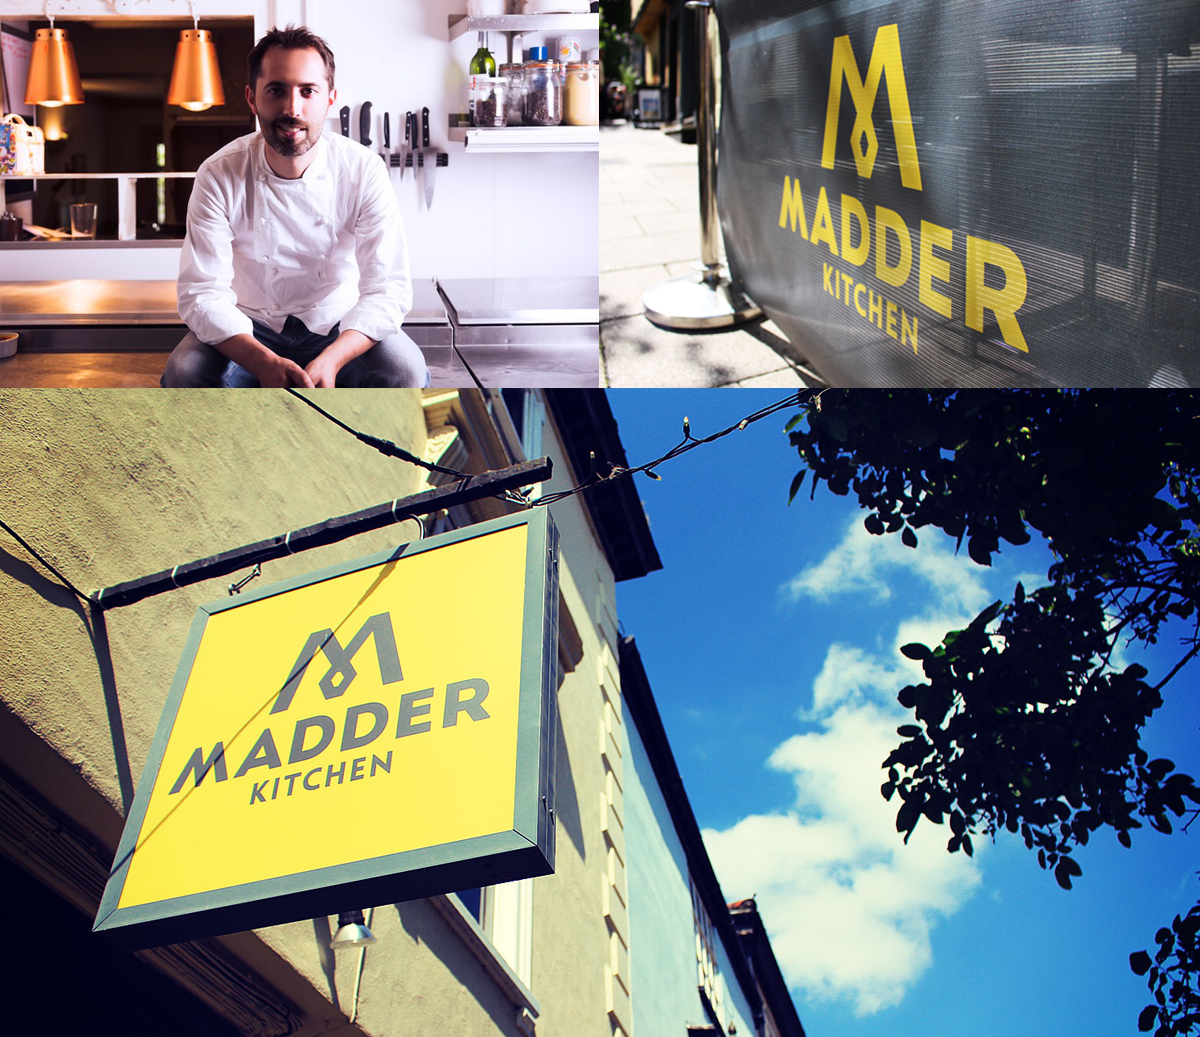 logo-branding-signage-design-norwich-madder-kitchen.png